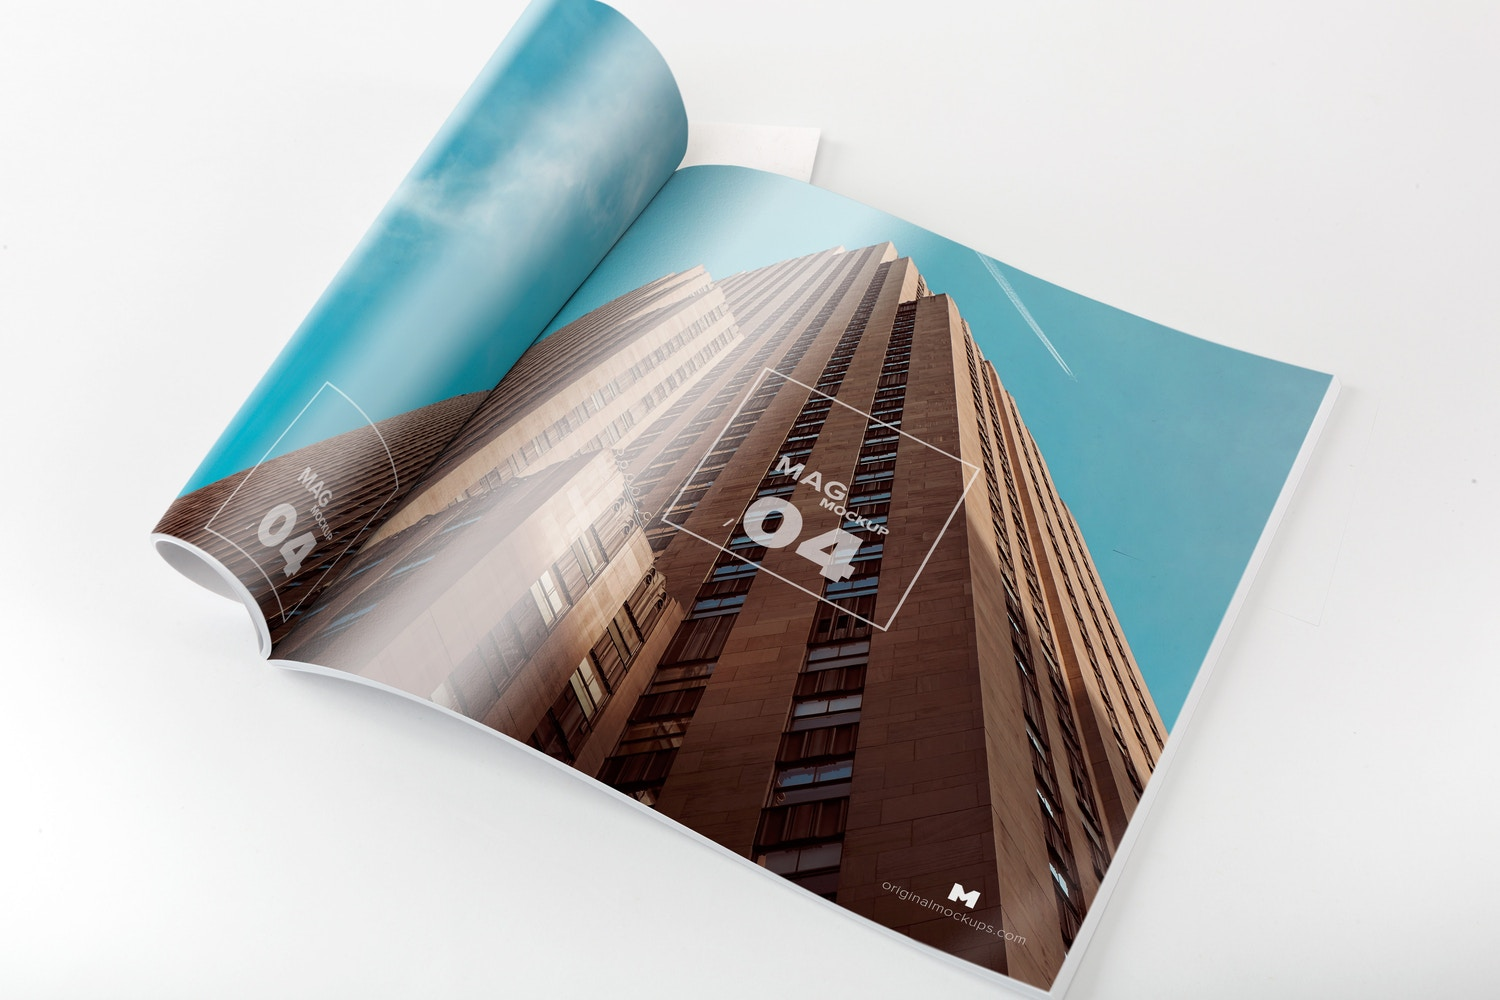 Square Magazine Opened Rolled Mockup by Original Mockups on Original Mockups